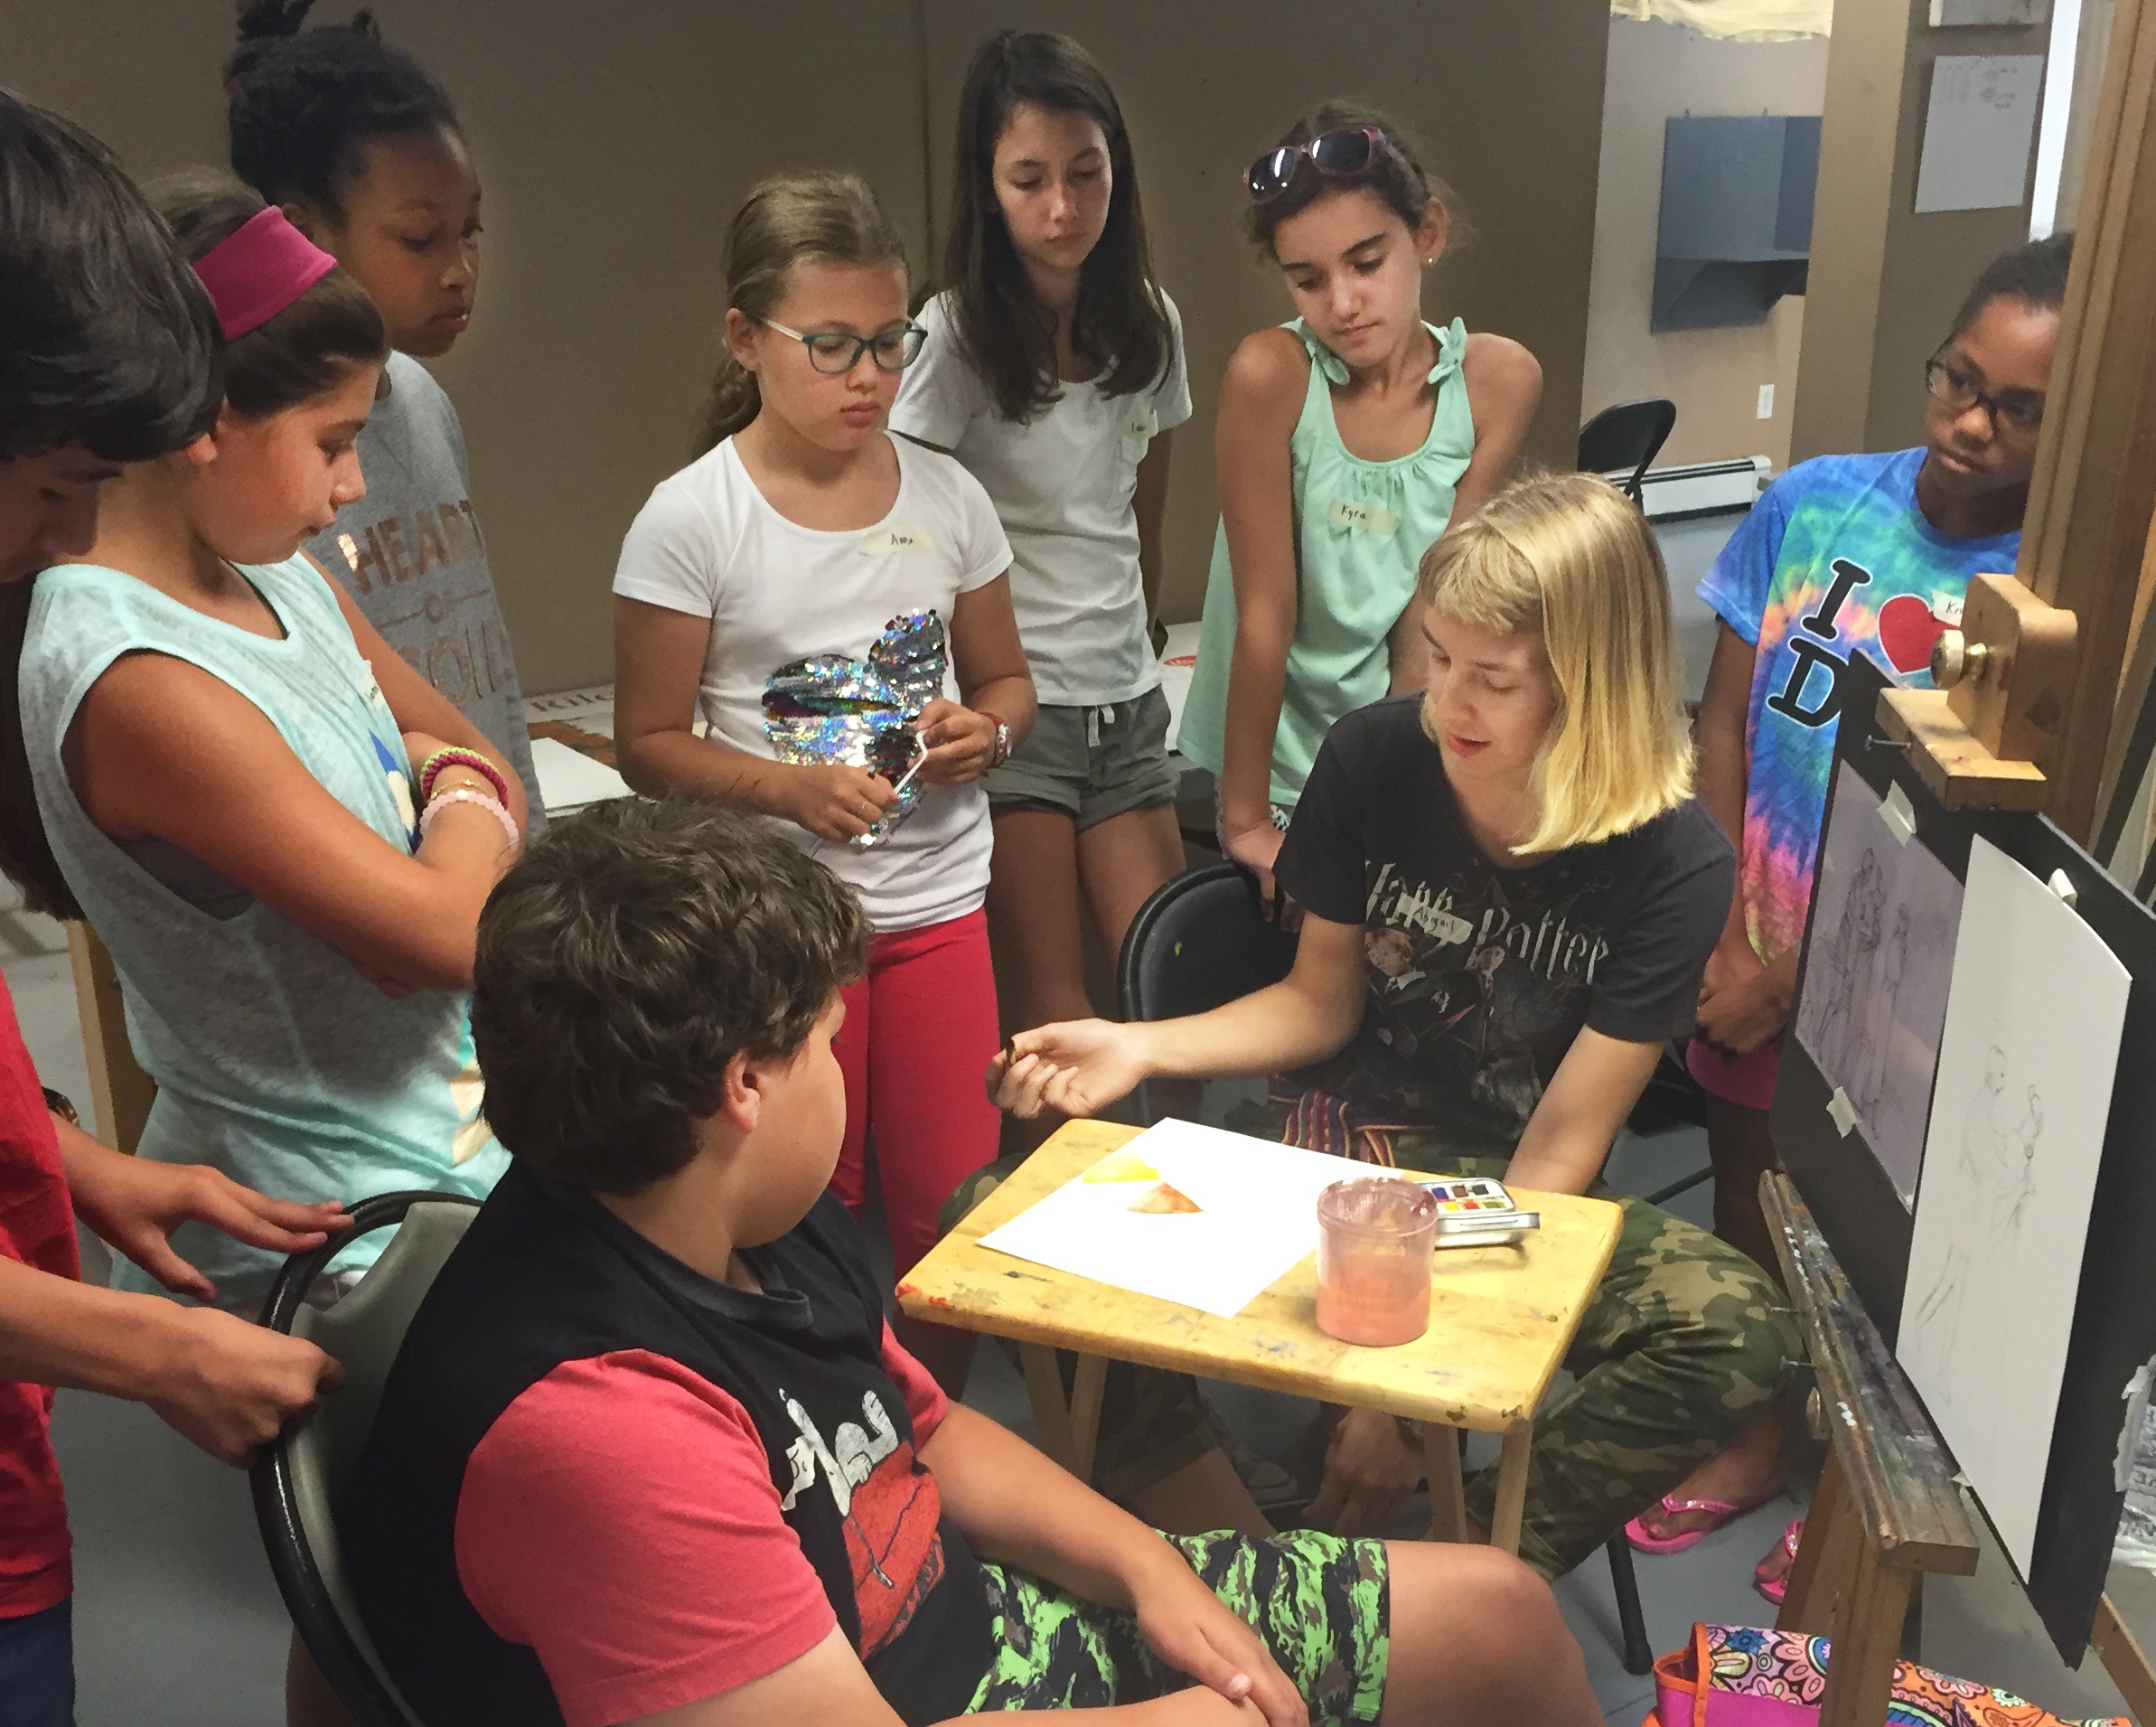 Our Summer Art Camps for Children ages 6-12, and Summer Intensives for Teens teach the same traditional techniques we teach adults, but in an age-appropriate manner.